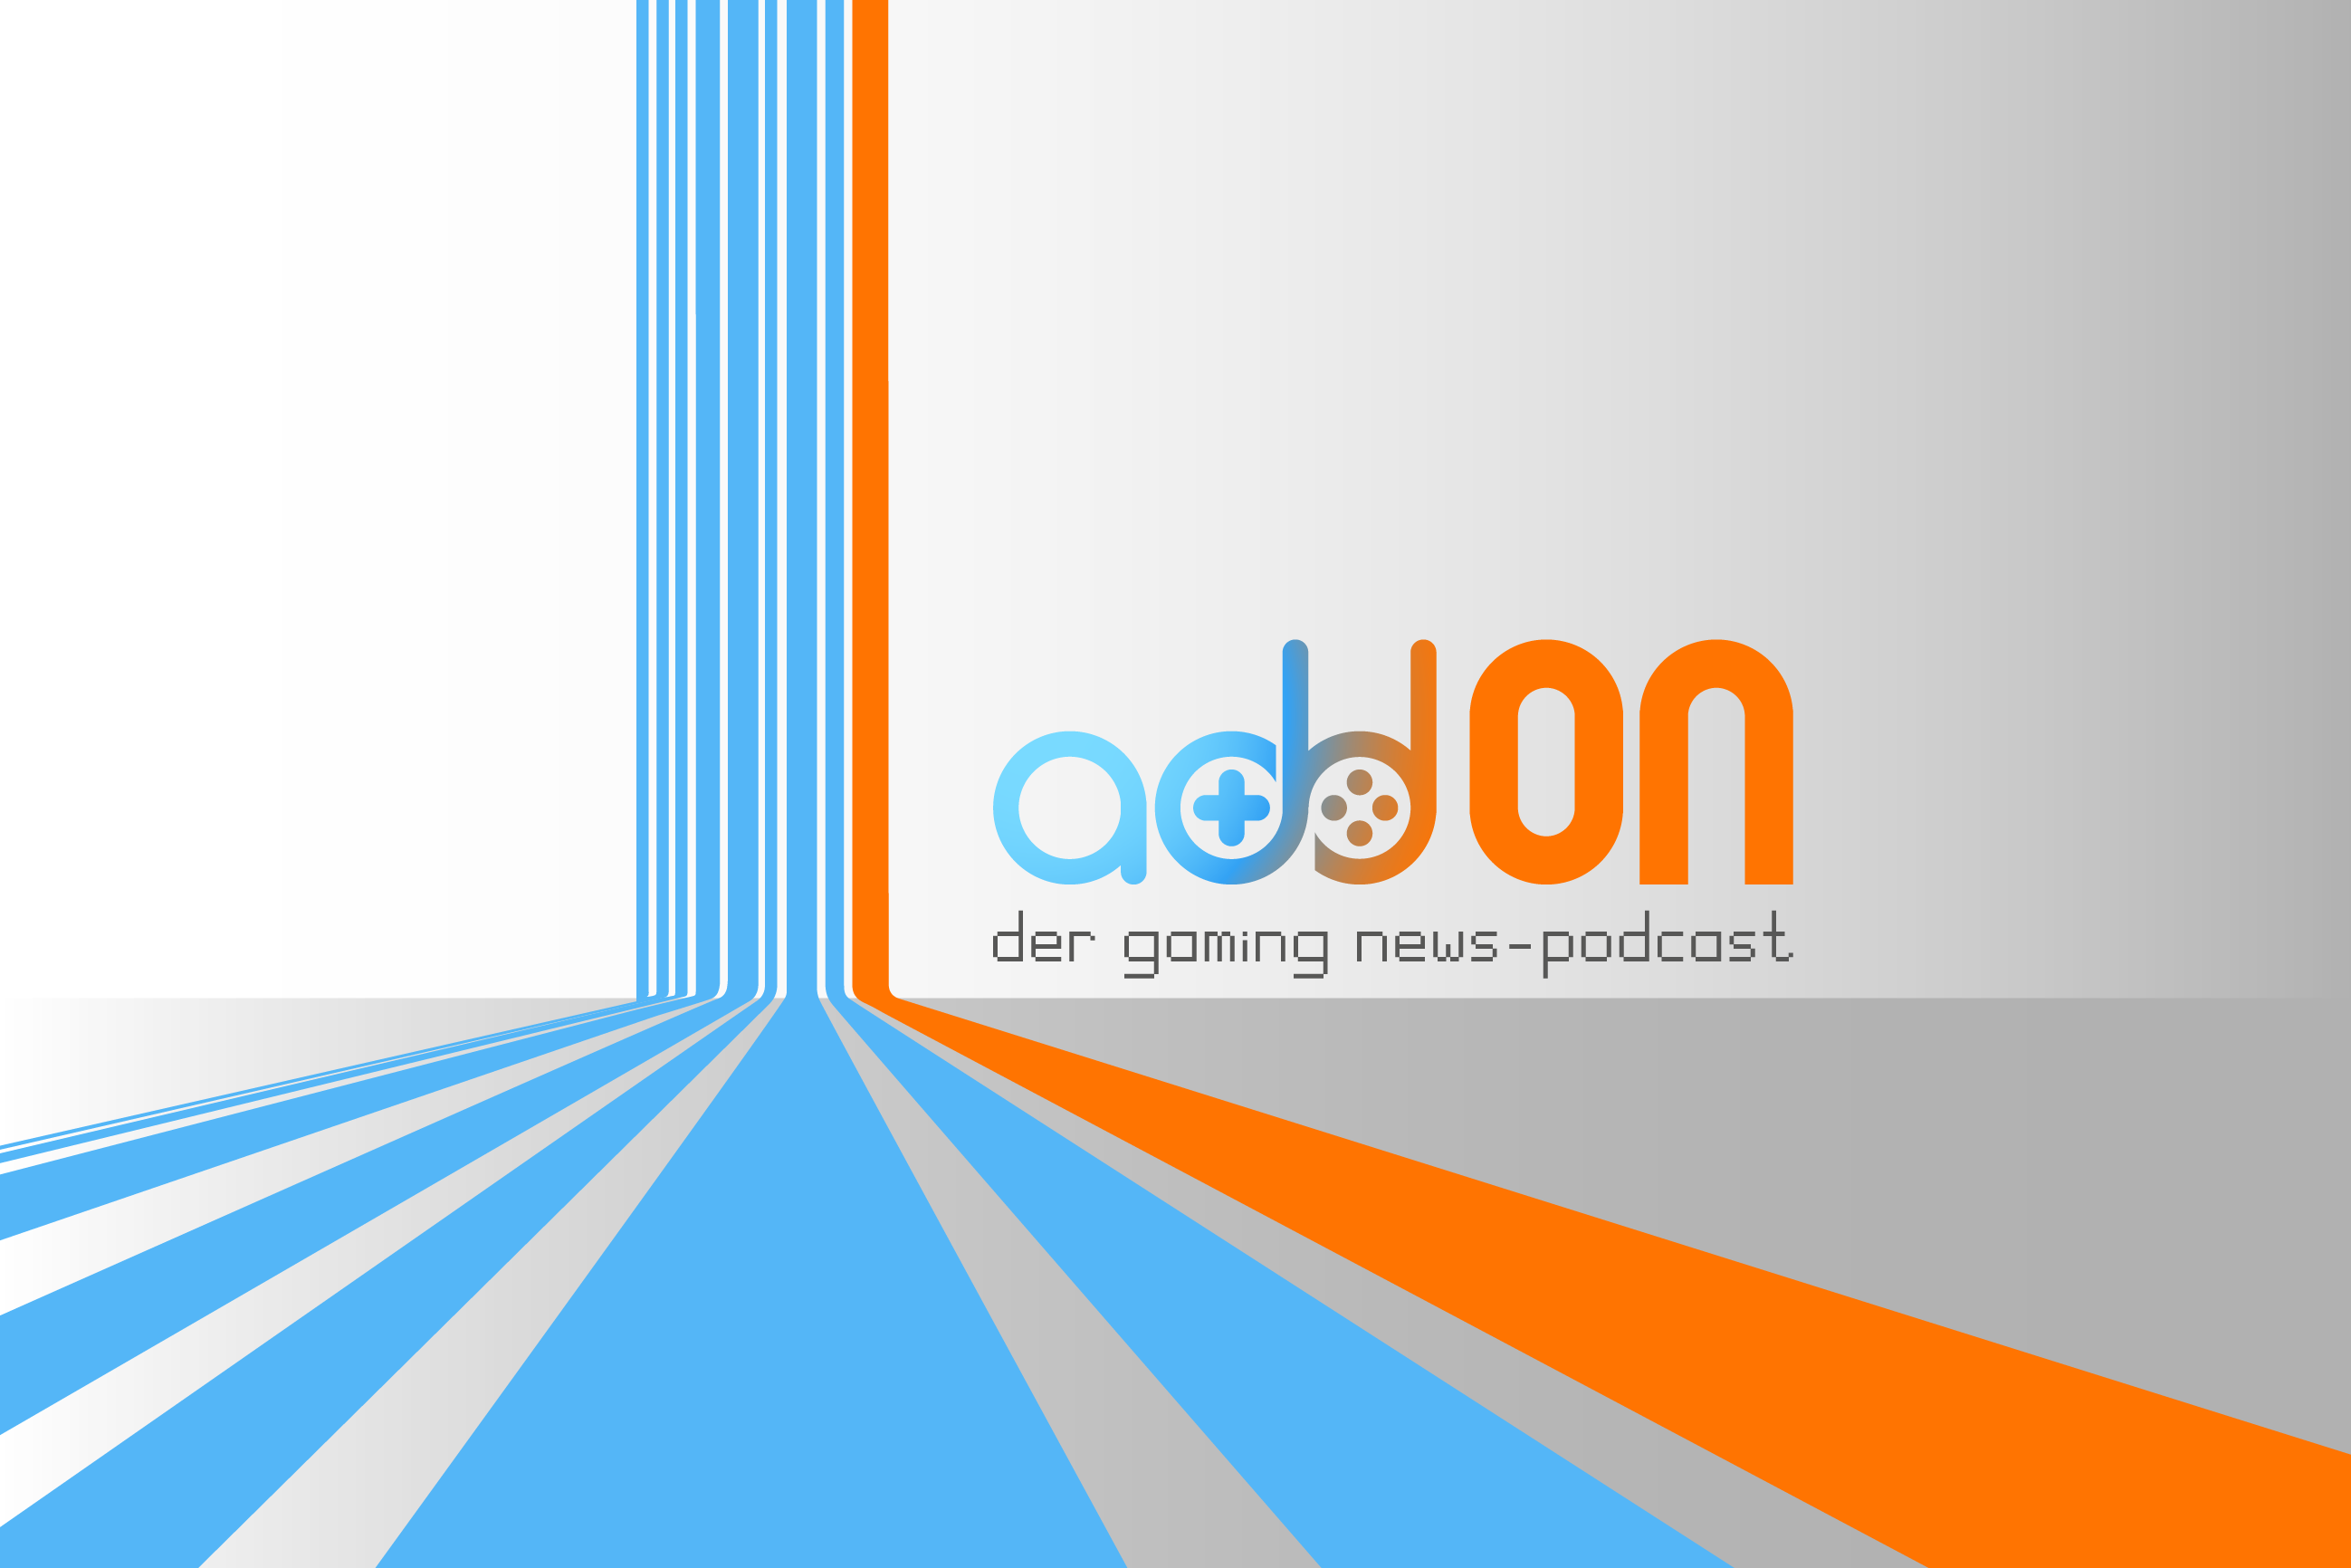 addON - der Gaming News-Podcast